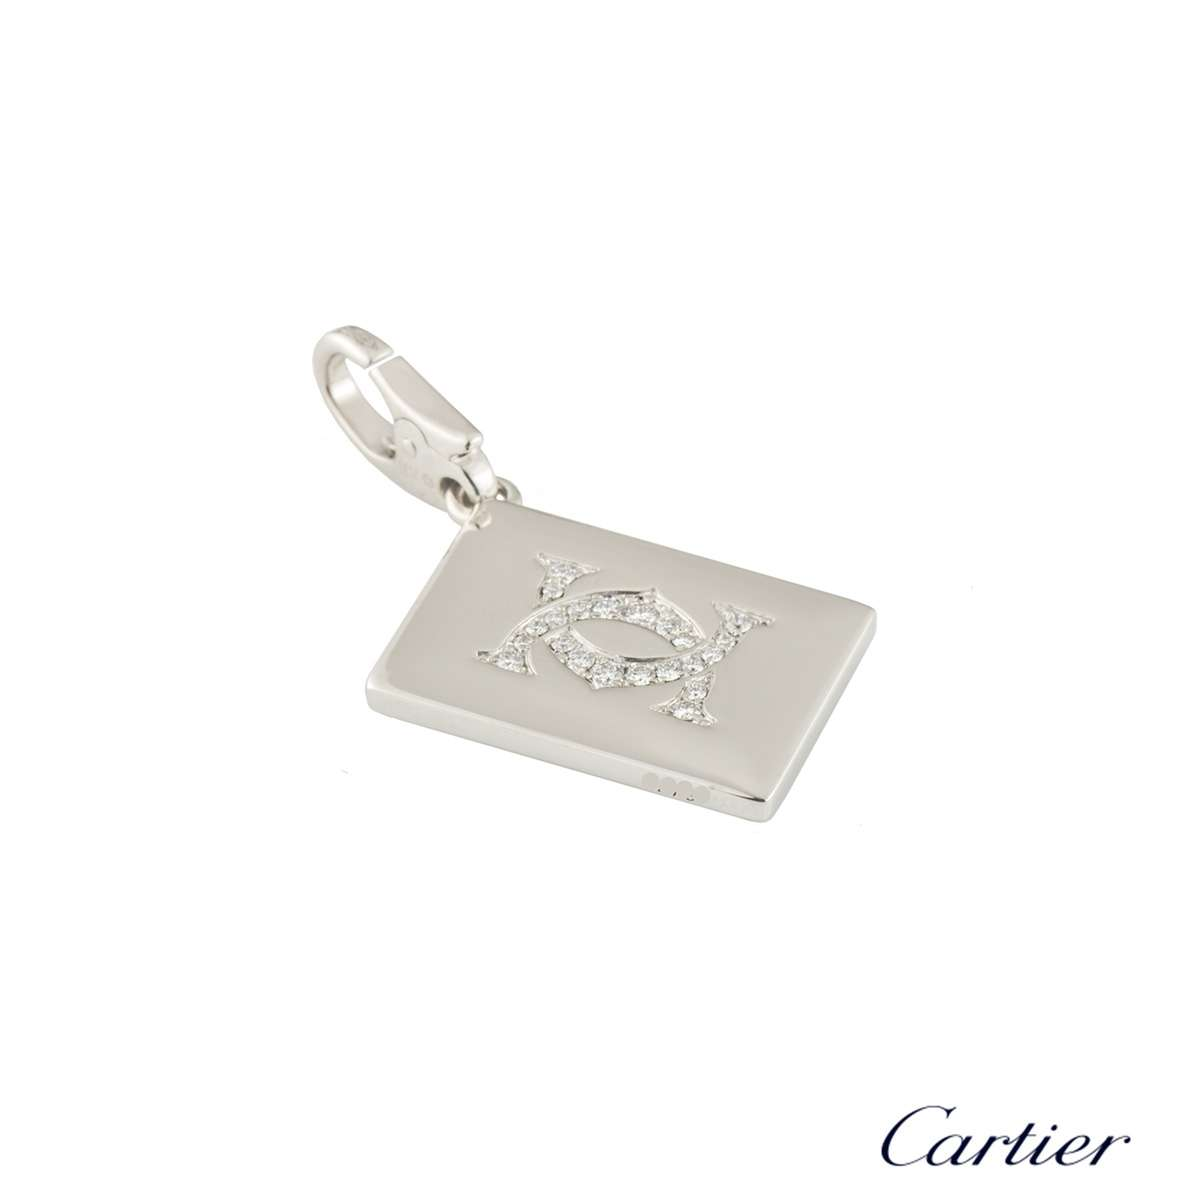 Cartier Limited Edition Joker Playing Card Charm